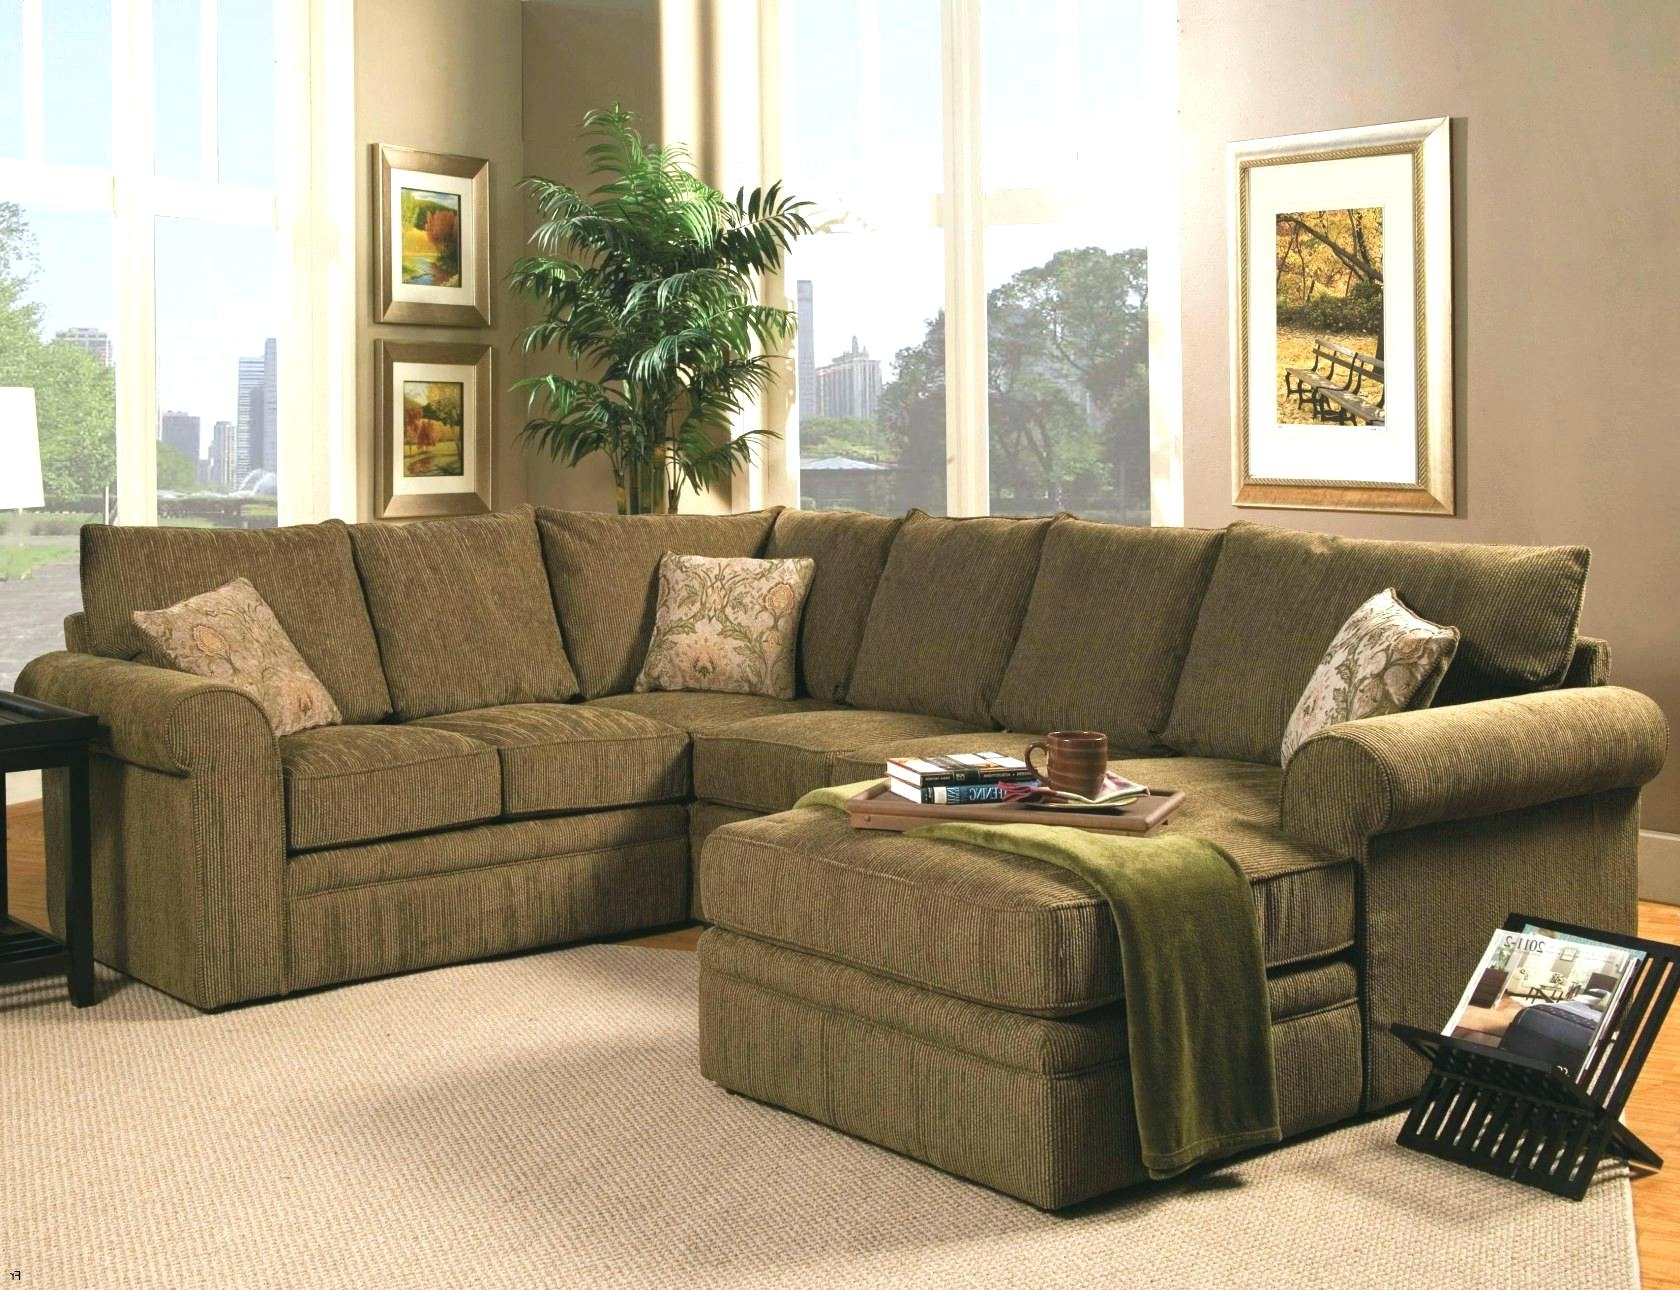 Green Sectional Sasage Sa With Chaise Teal Leather Couches For Intended For Most Up To Date Green Sectional Sofas With Chaise (Gallery 7 of 20)